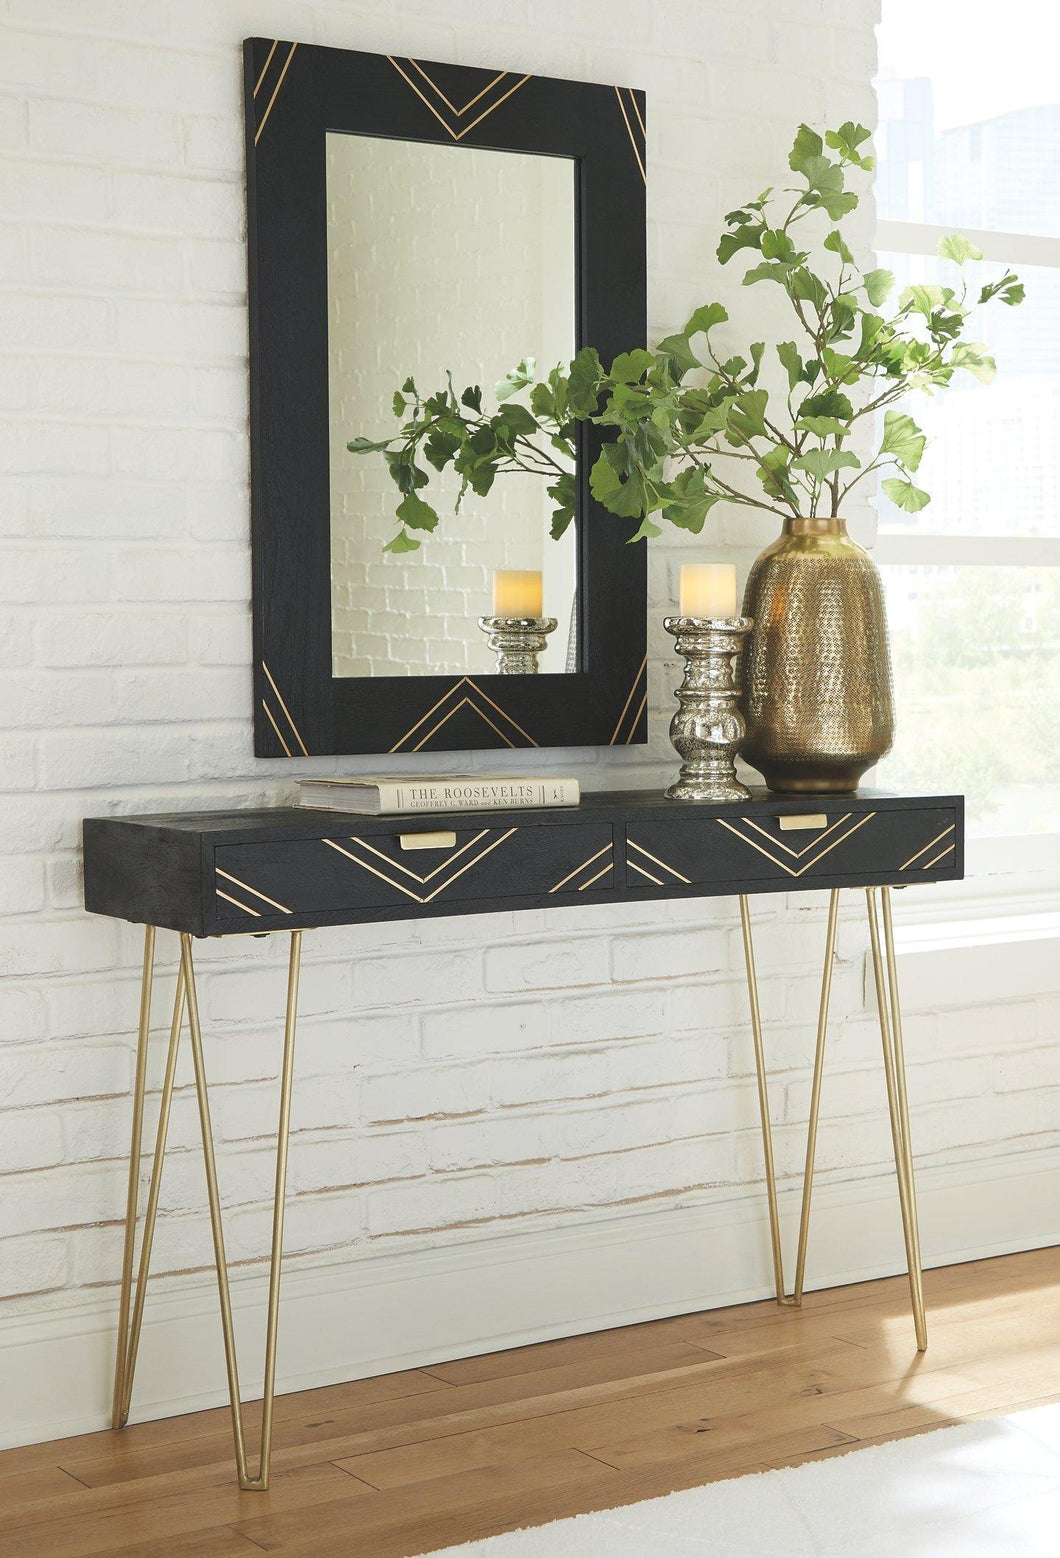 Coramont Console Table with Mirror A4000212 By Ashley Furniture from sofafair